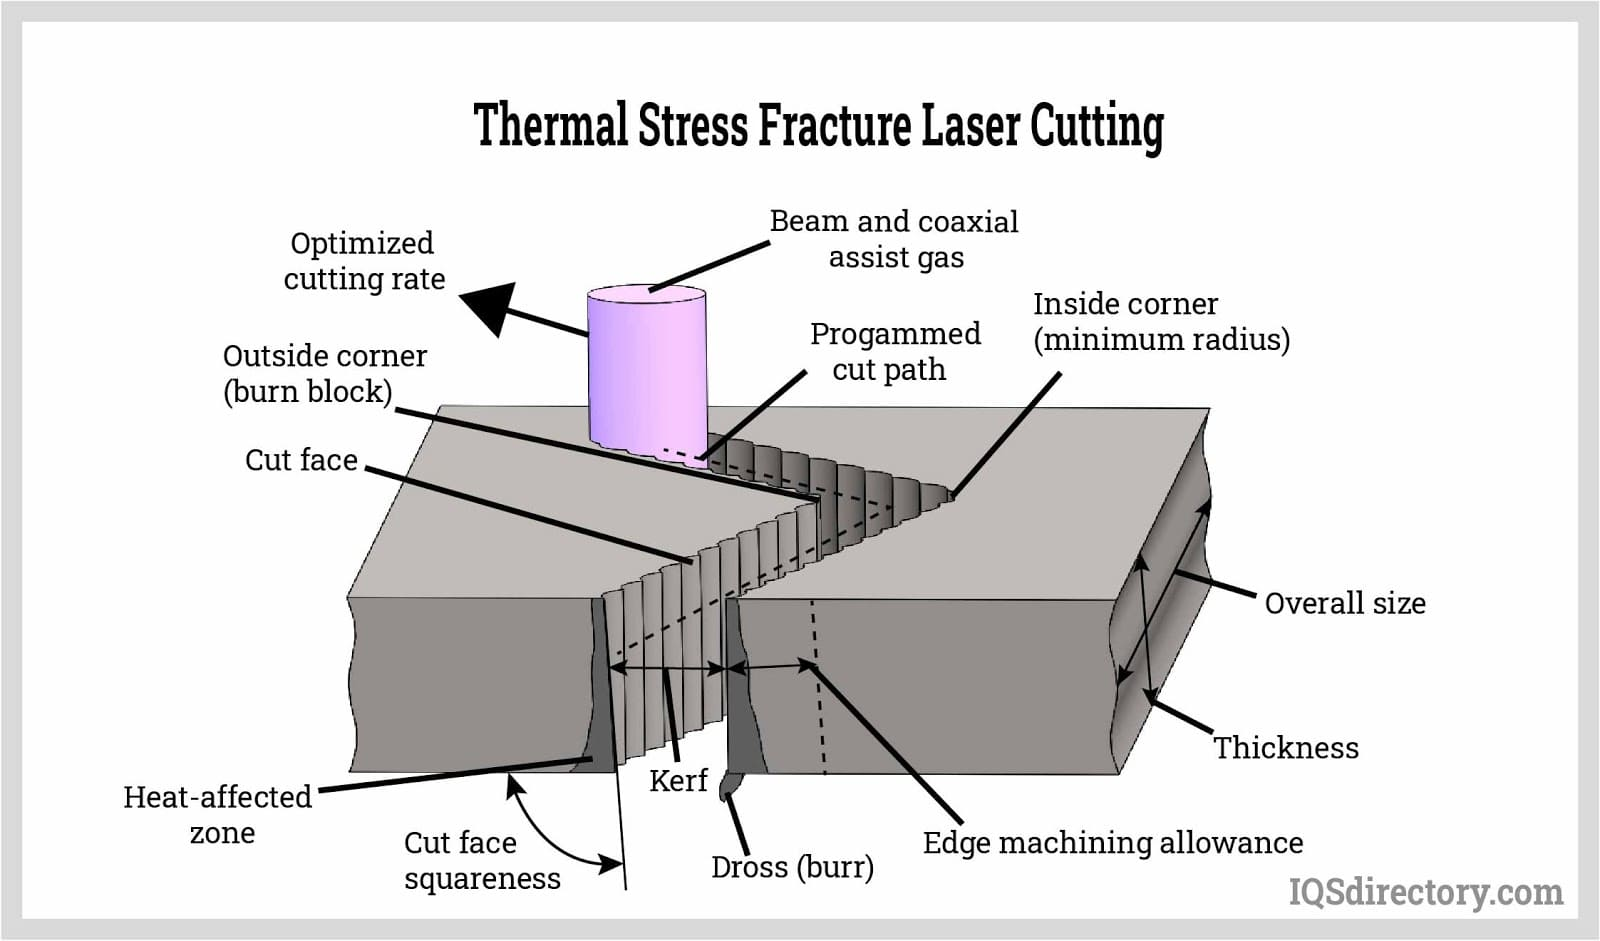 Thermal Stress Fracture Laser Cutting